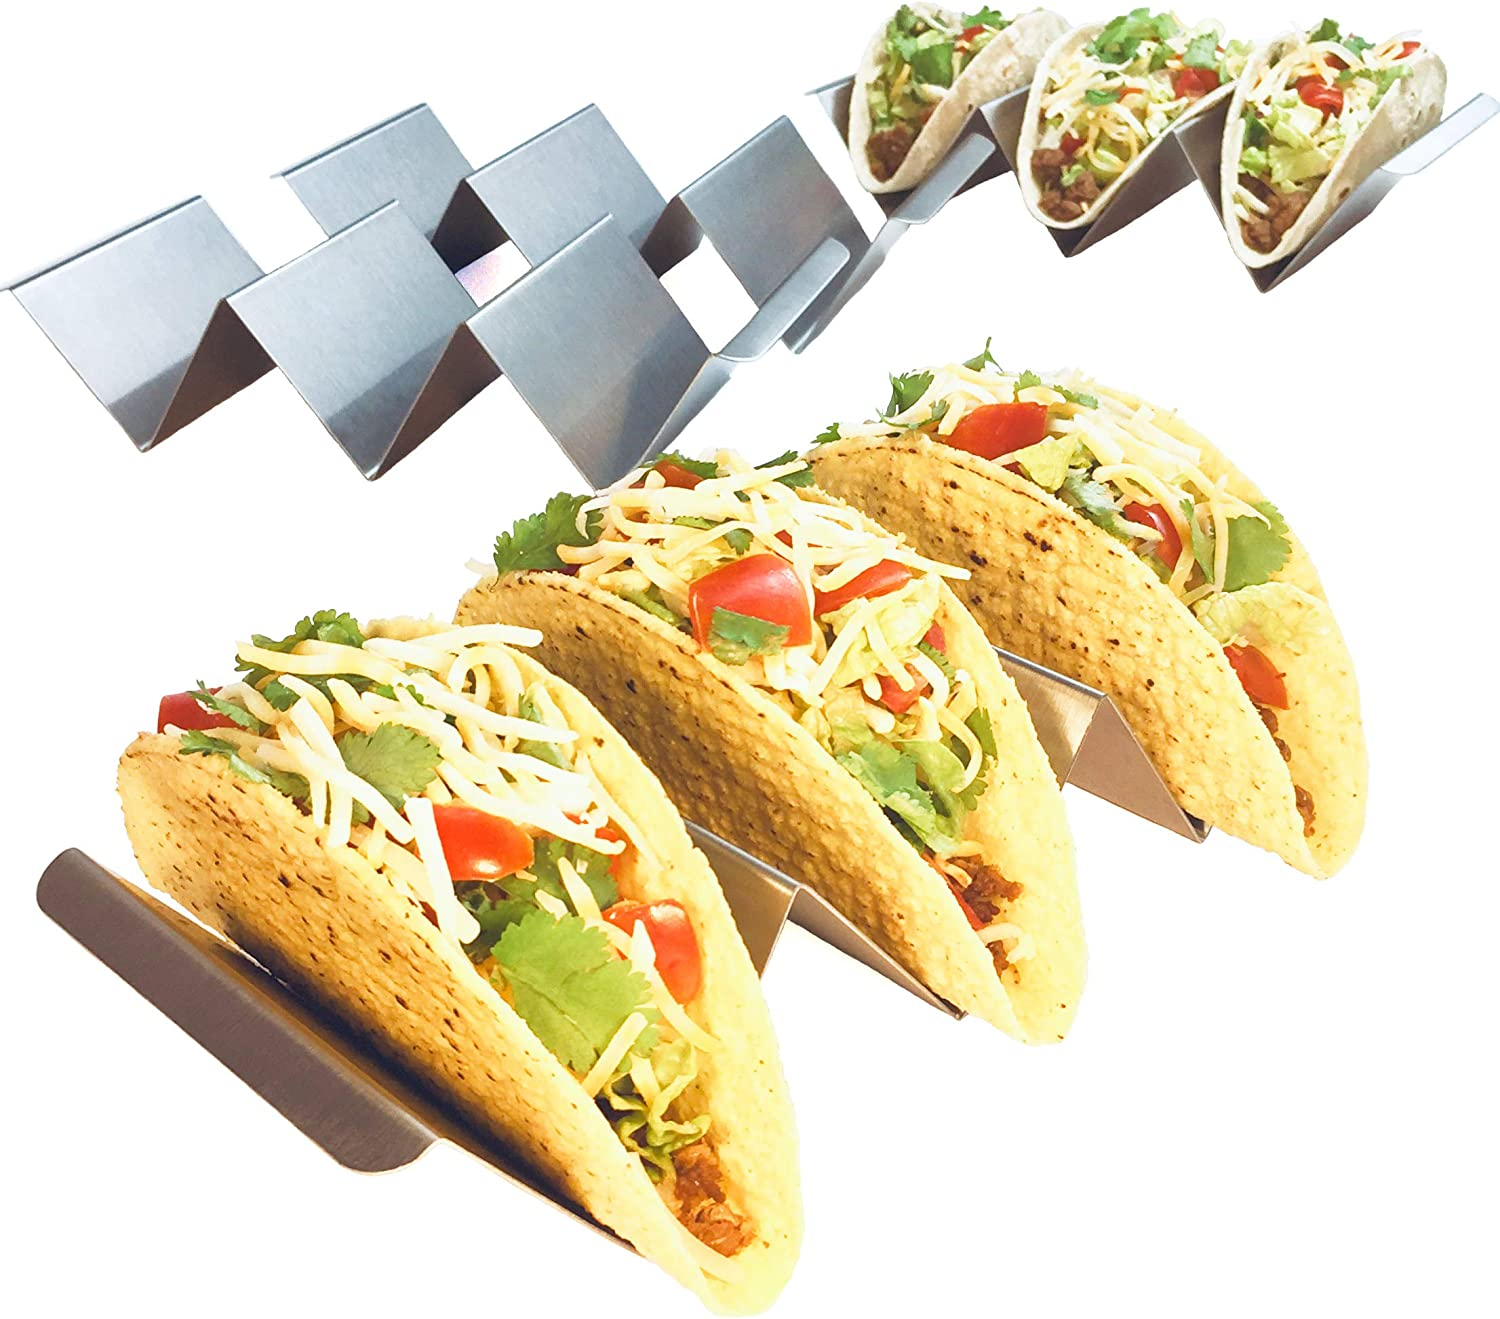 Stainless Steel Taco Trays with 4Salad Cups /& 4 Spoons,Holds 3 Tacos Each Keeping Shells Upright /& Neat Taco Holder Stand Set of 4